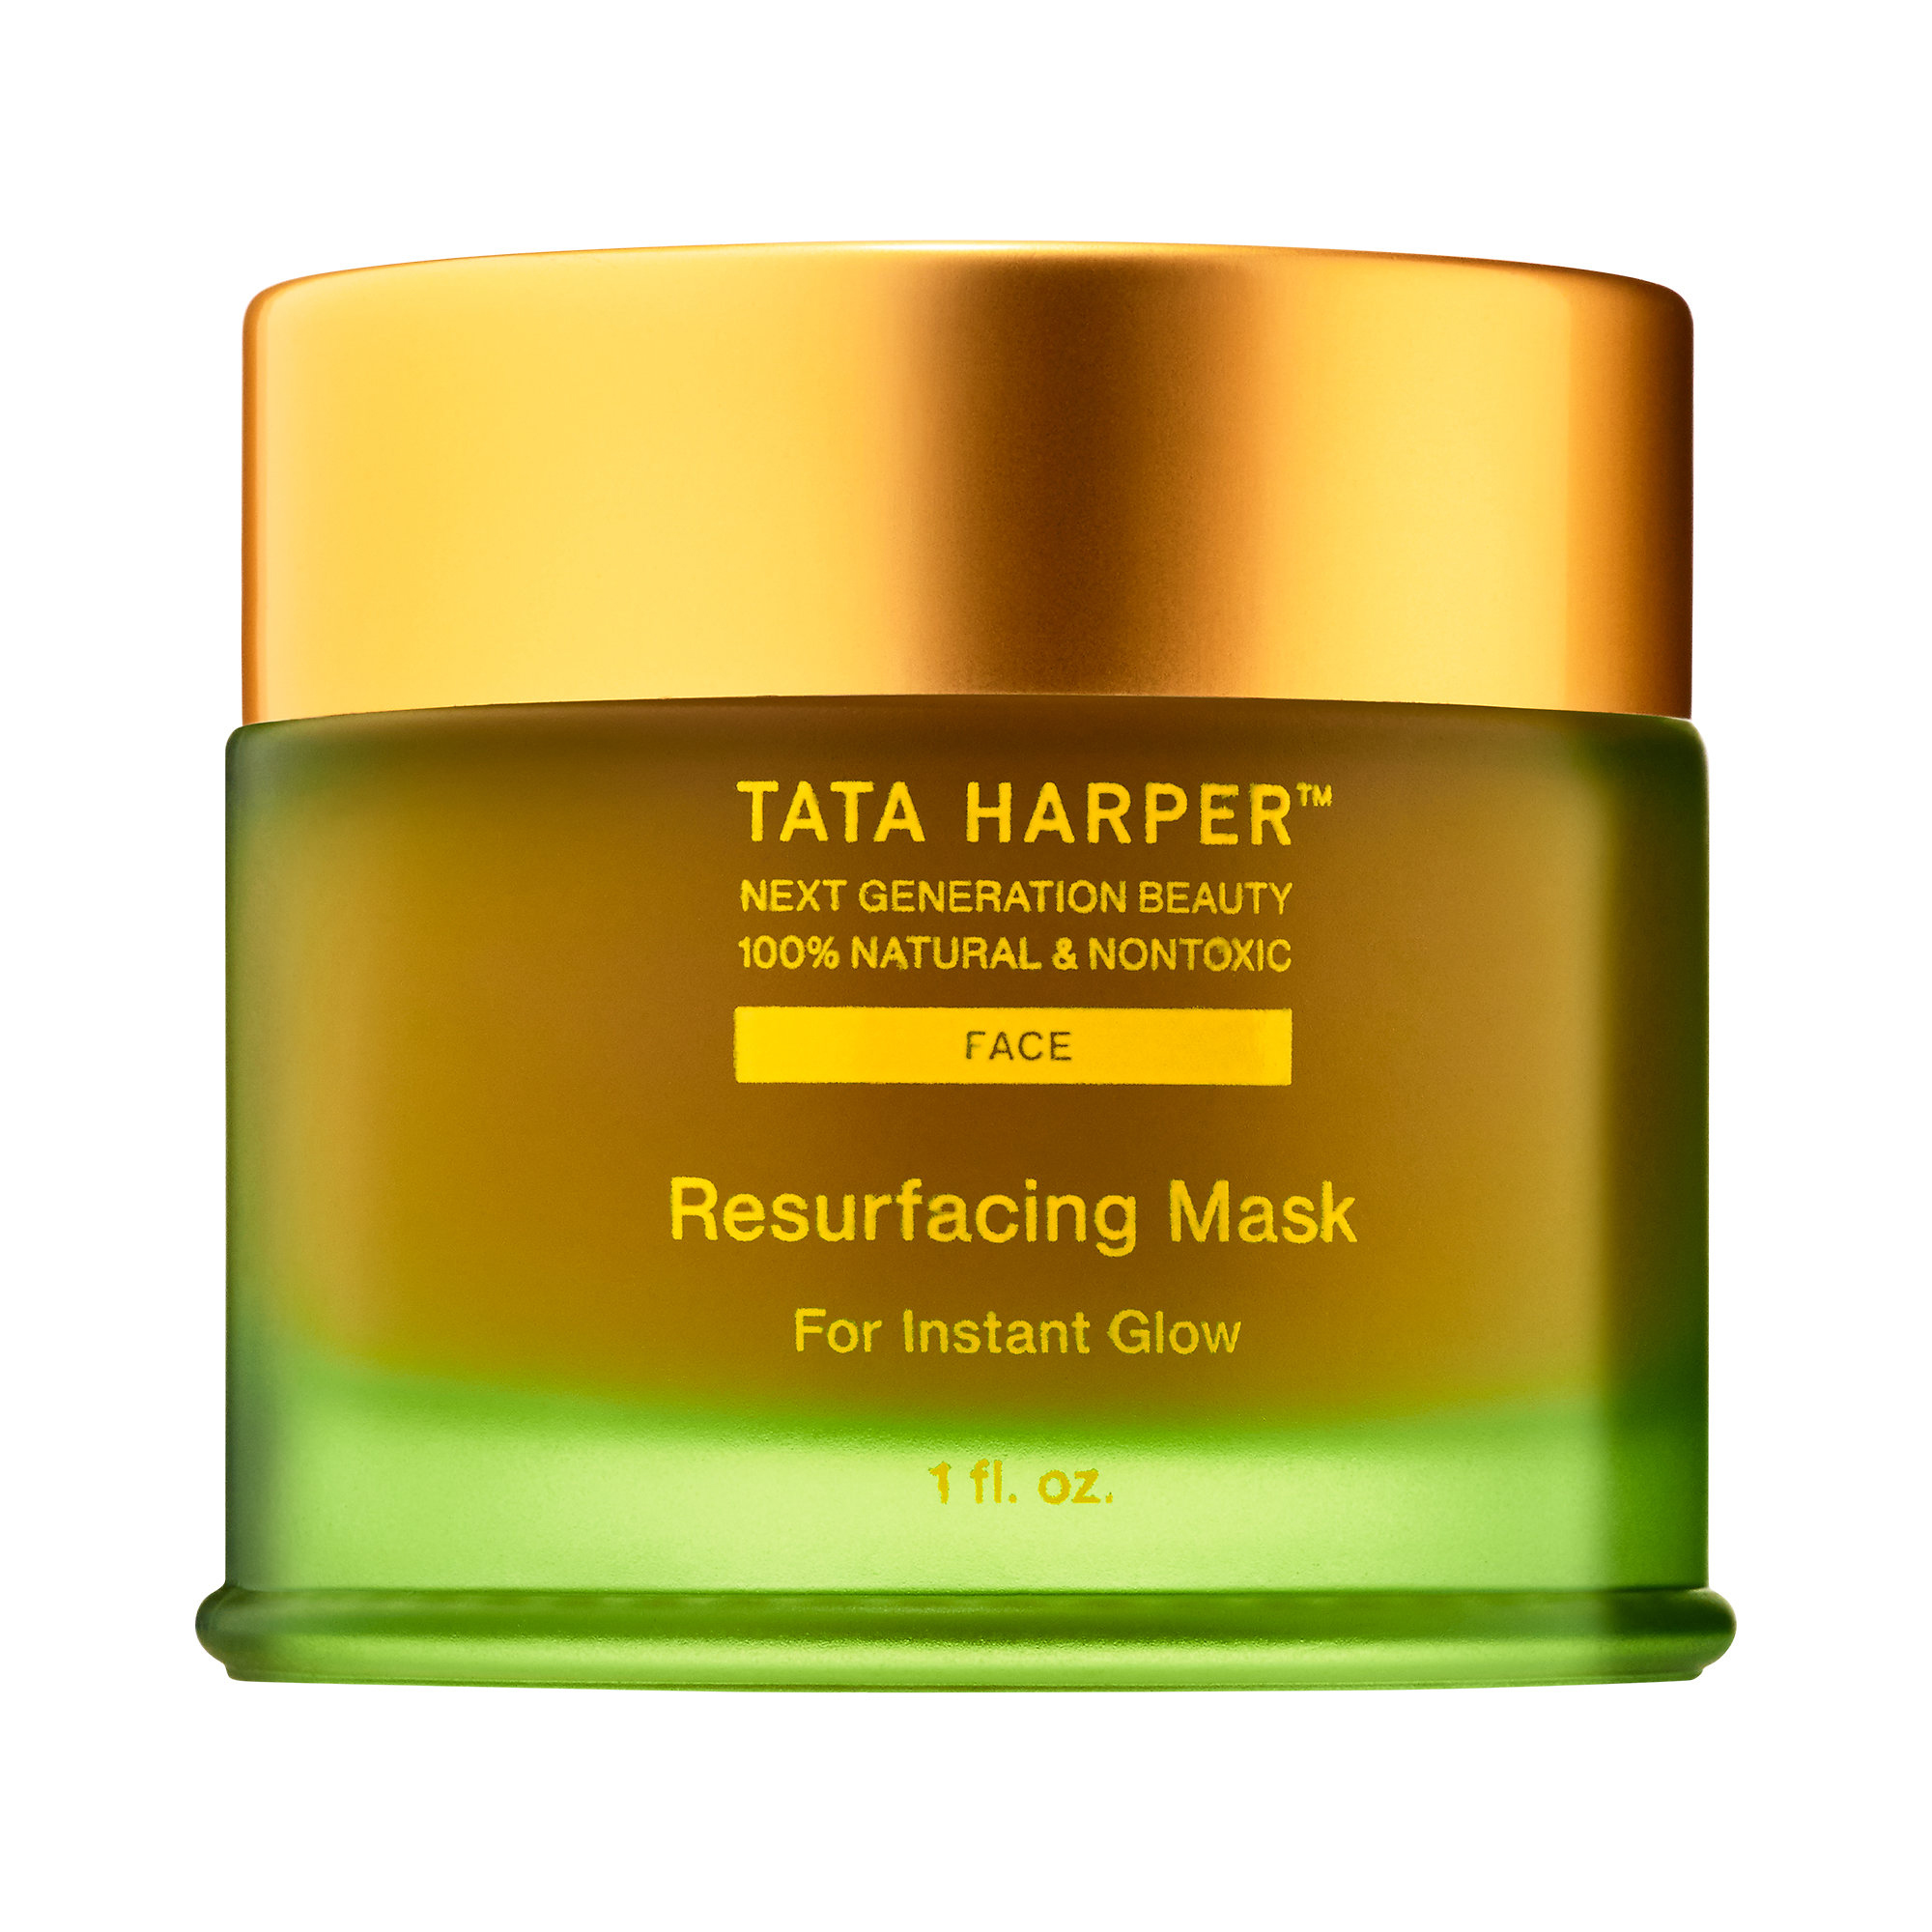 Best Clean Beauty Exfoliator: TATA HARPER Resurfacing Mask